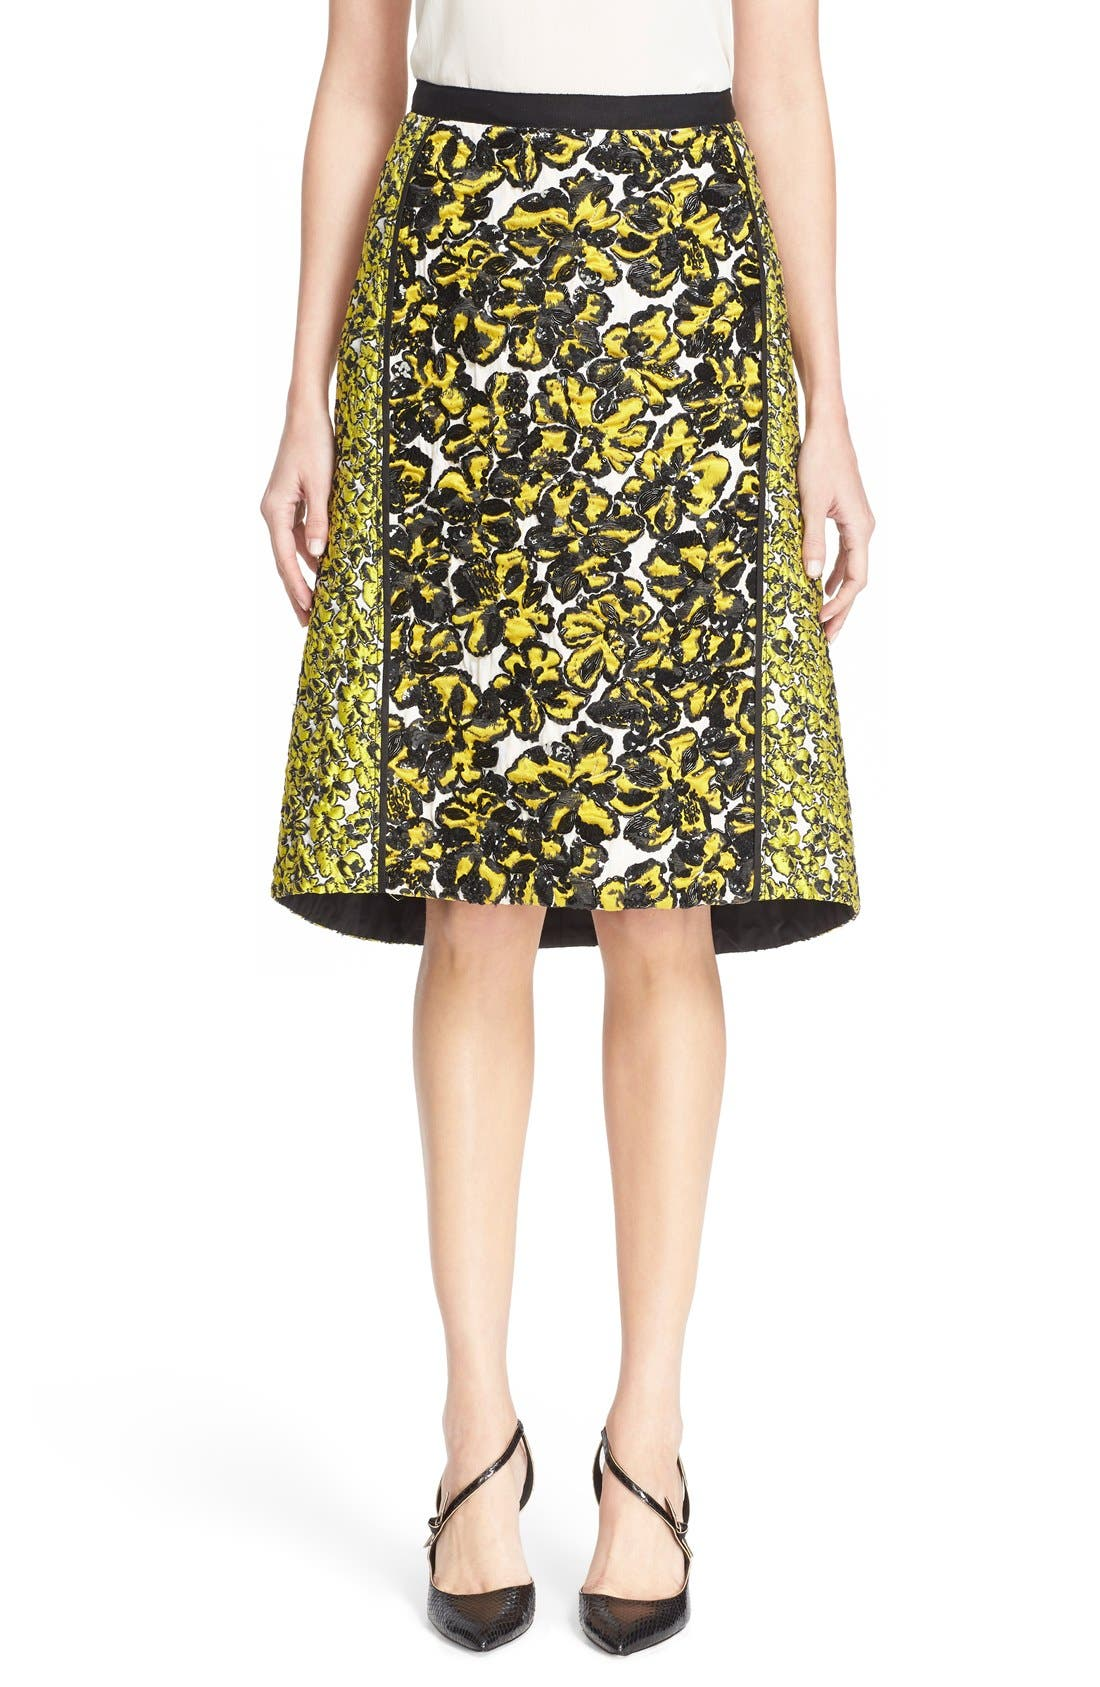 Alternate Image 1 Selected - Oscar de la Renta Embellished Floral Jacquard Skirt